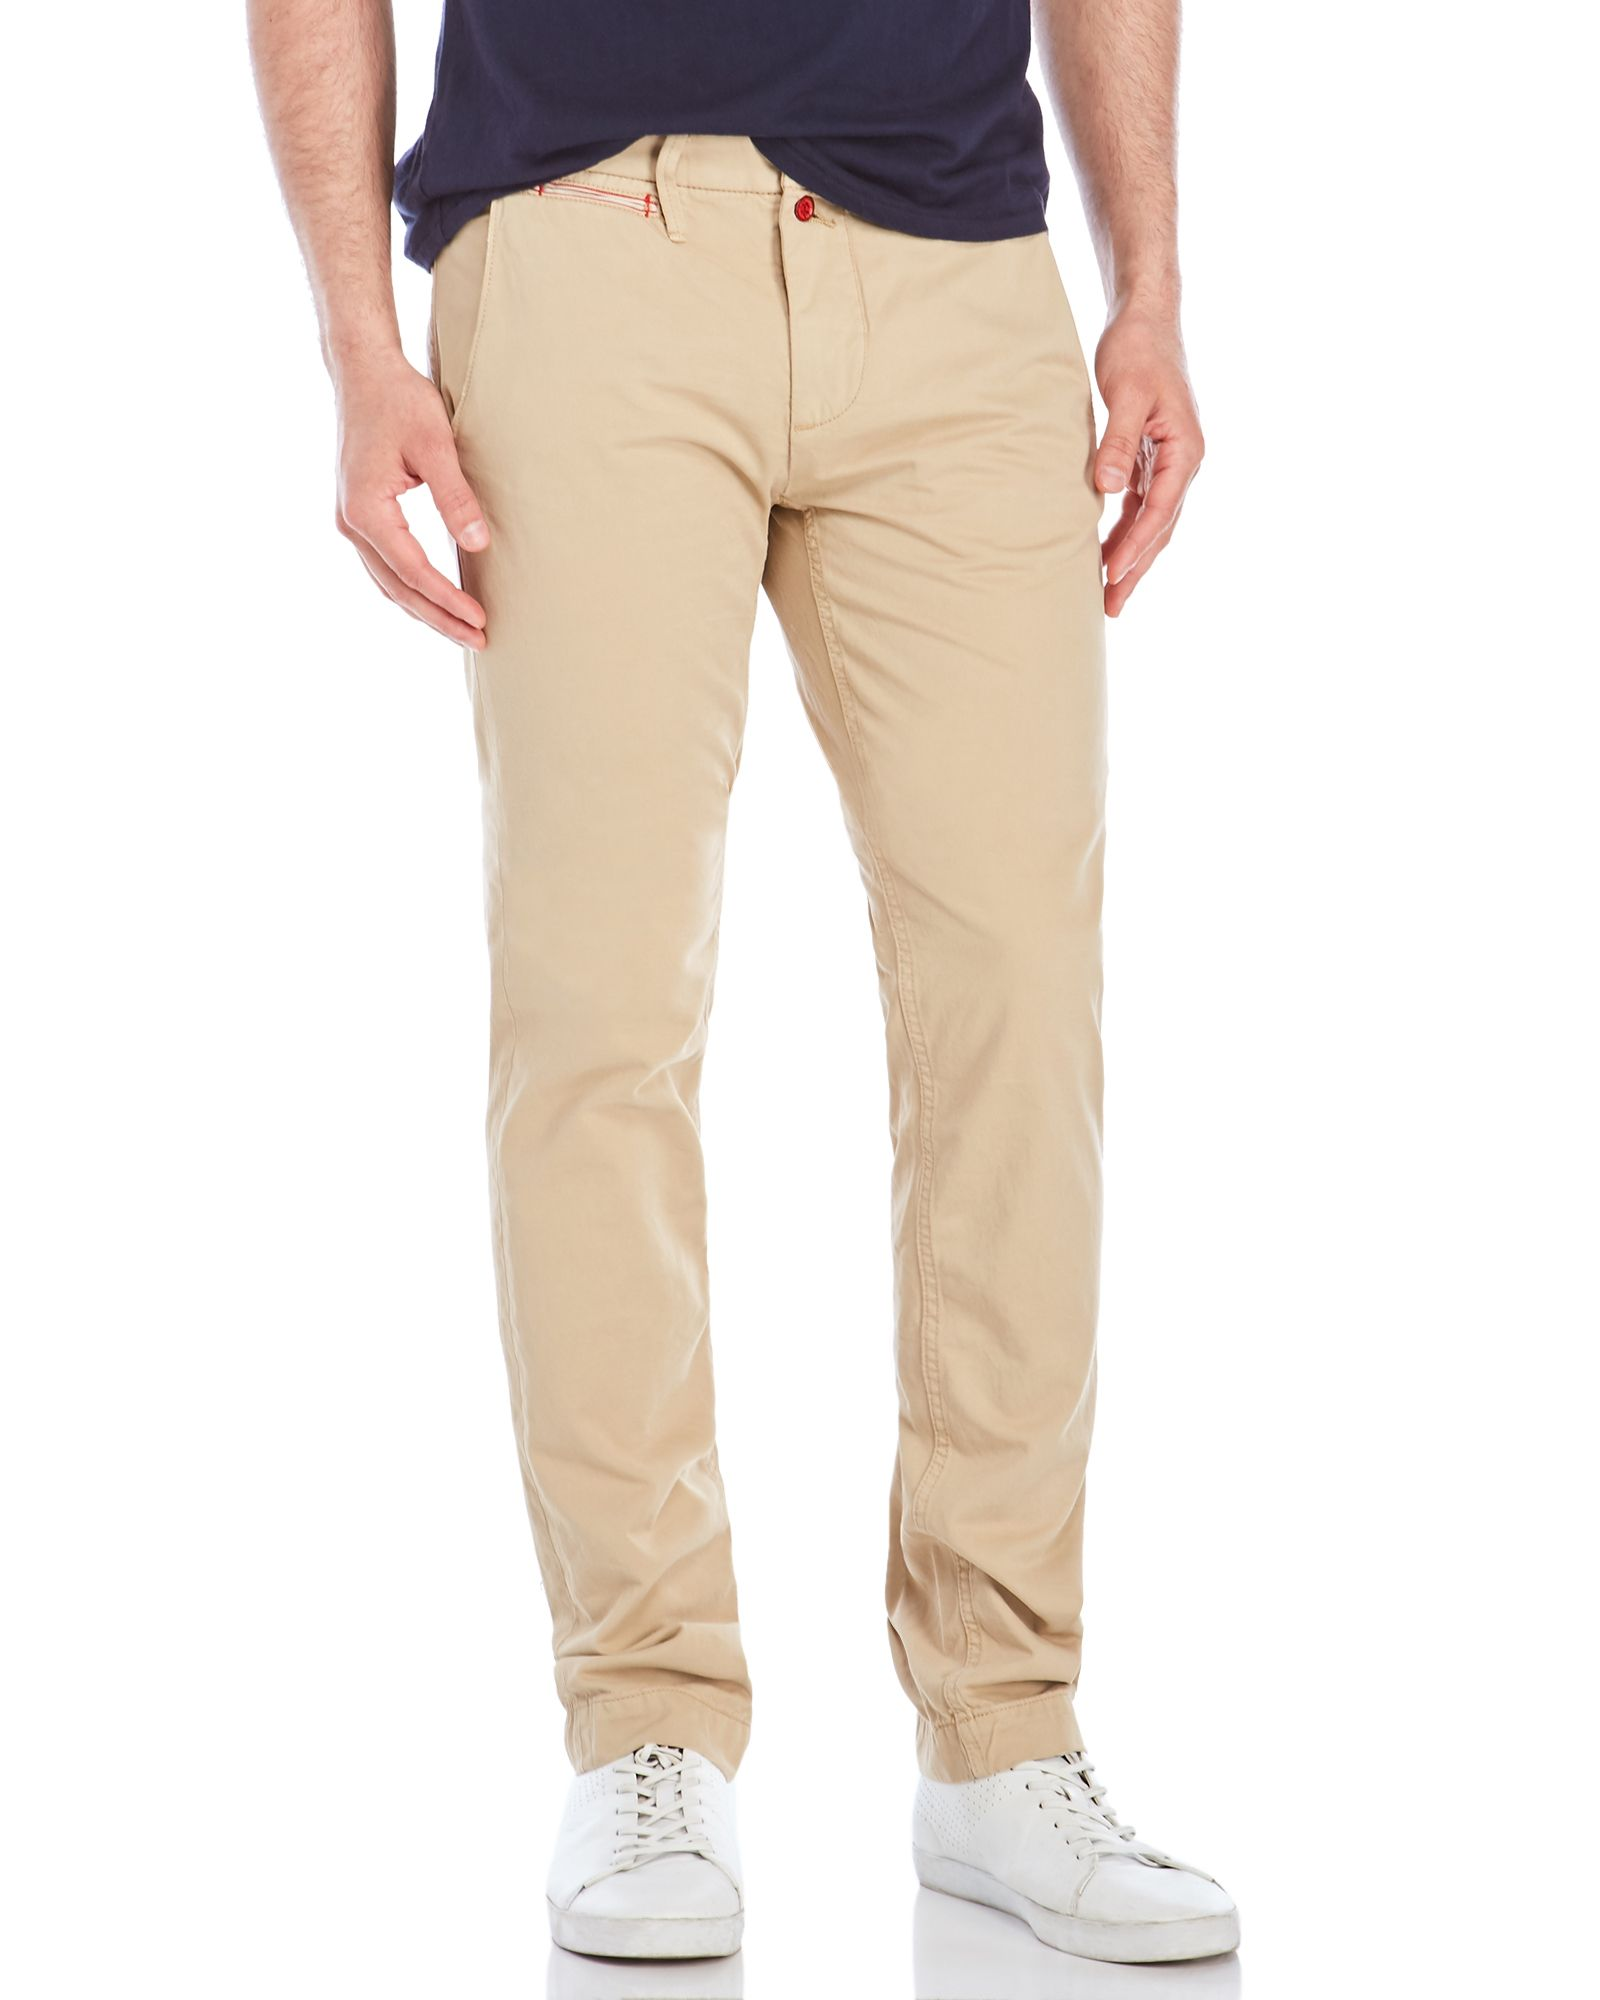 Curated Andy Khaki Pants